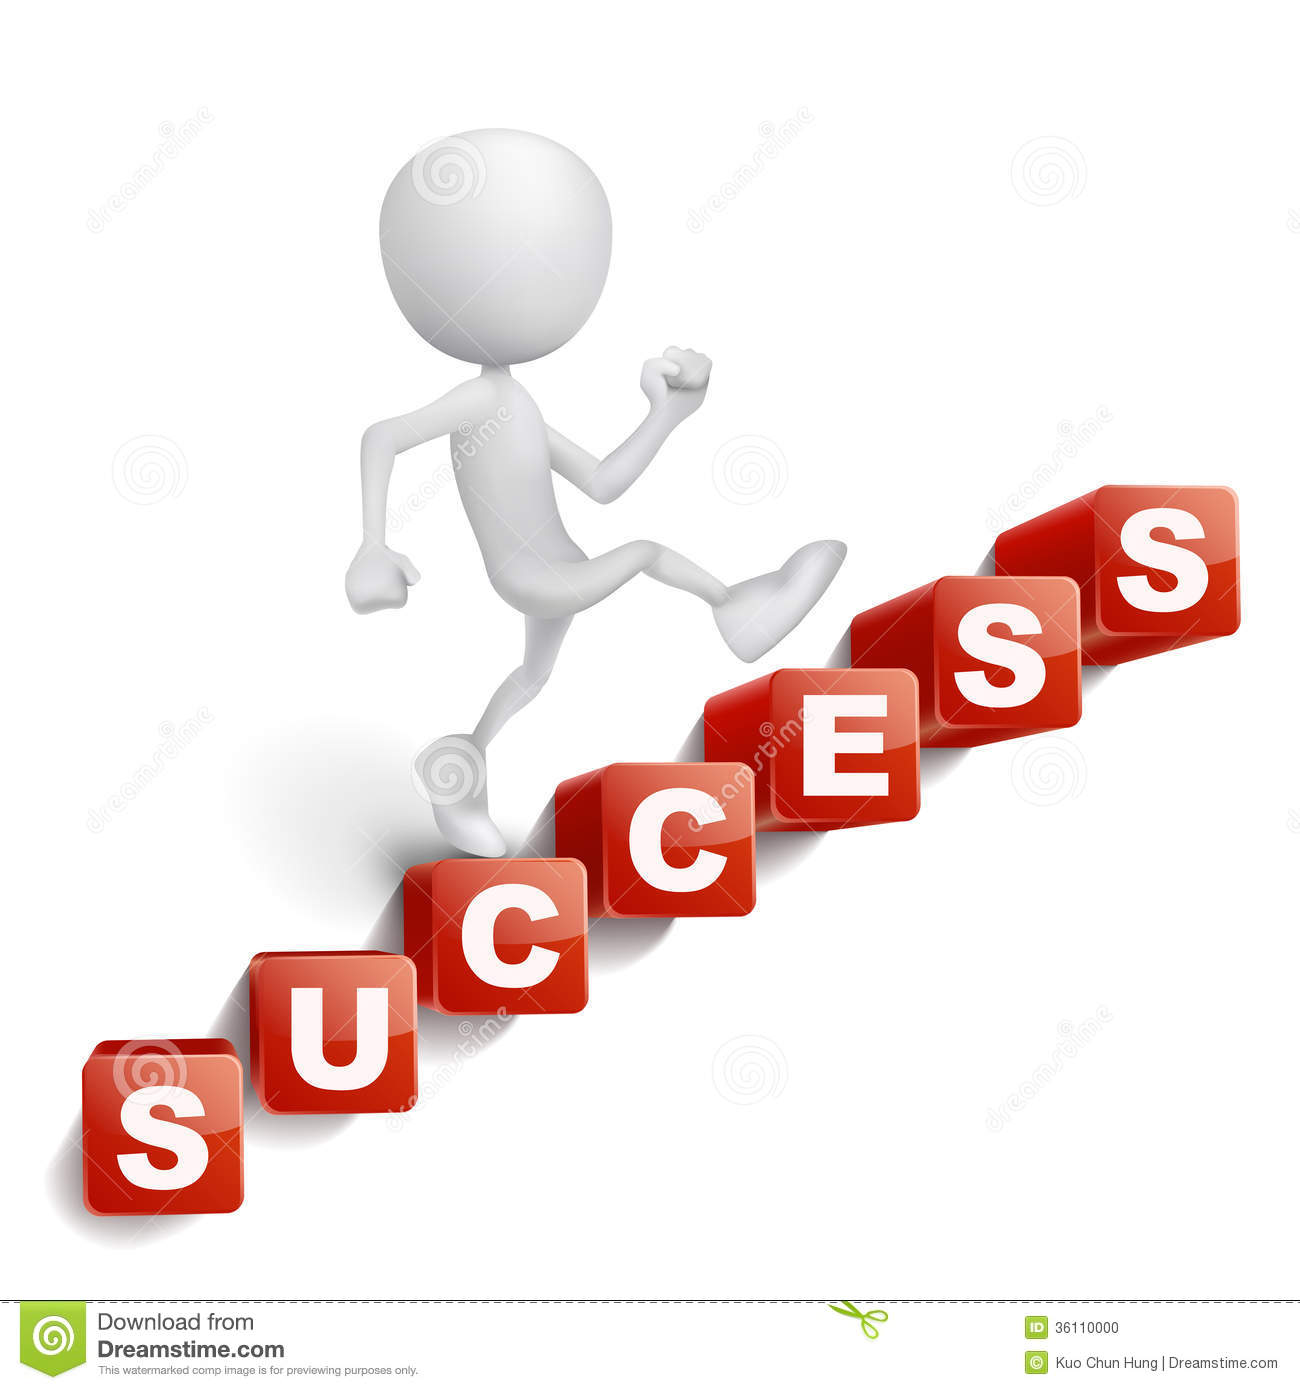 Climbing st success clipart jpg